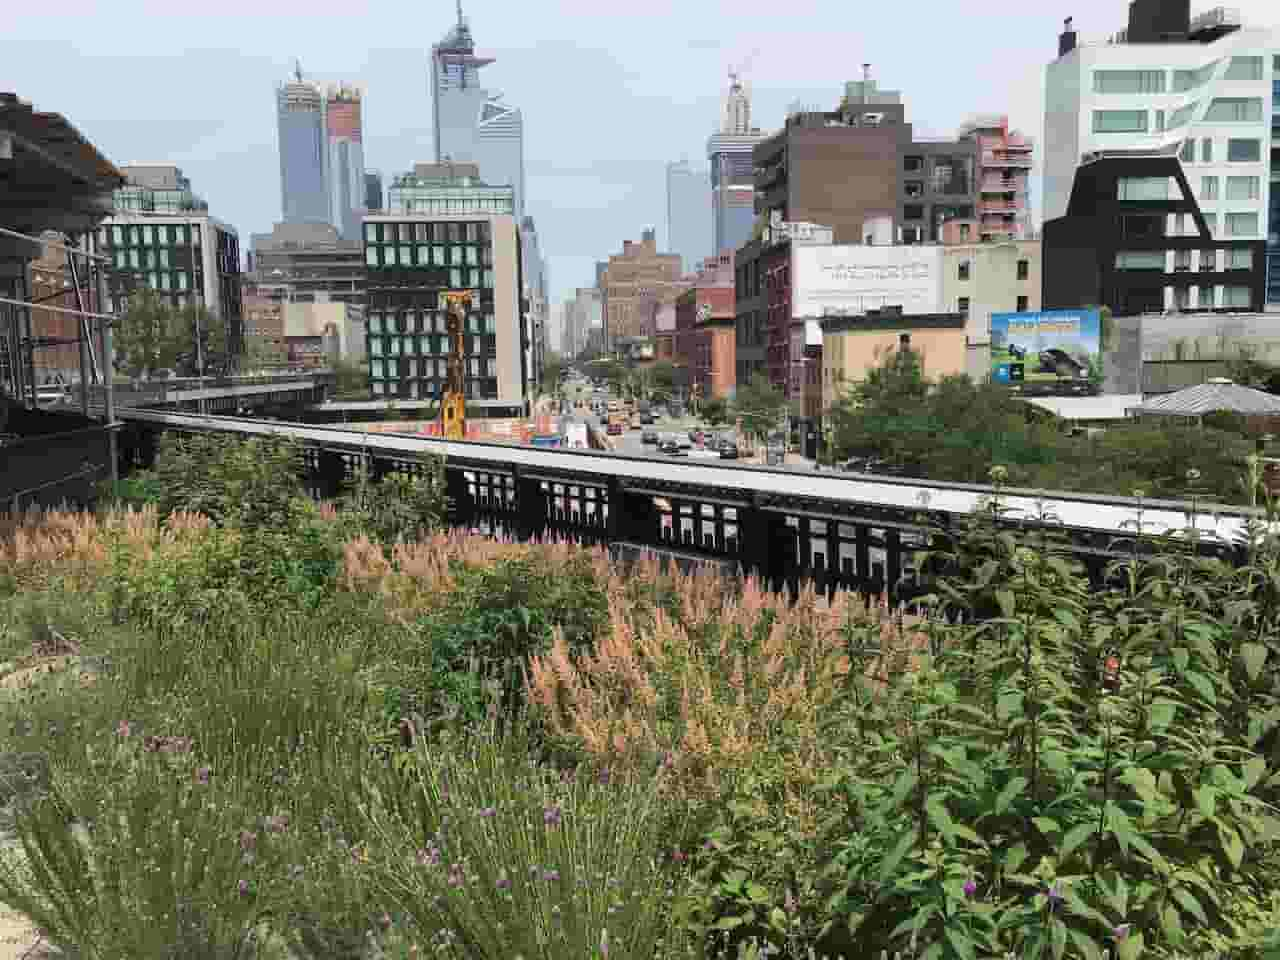 A lovely view of Manhattan from the High Line park